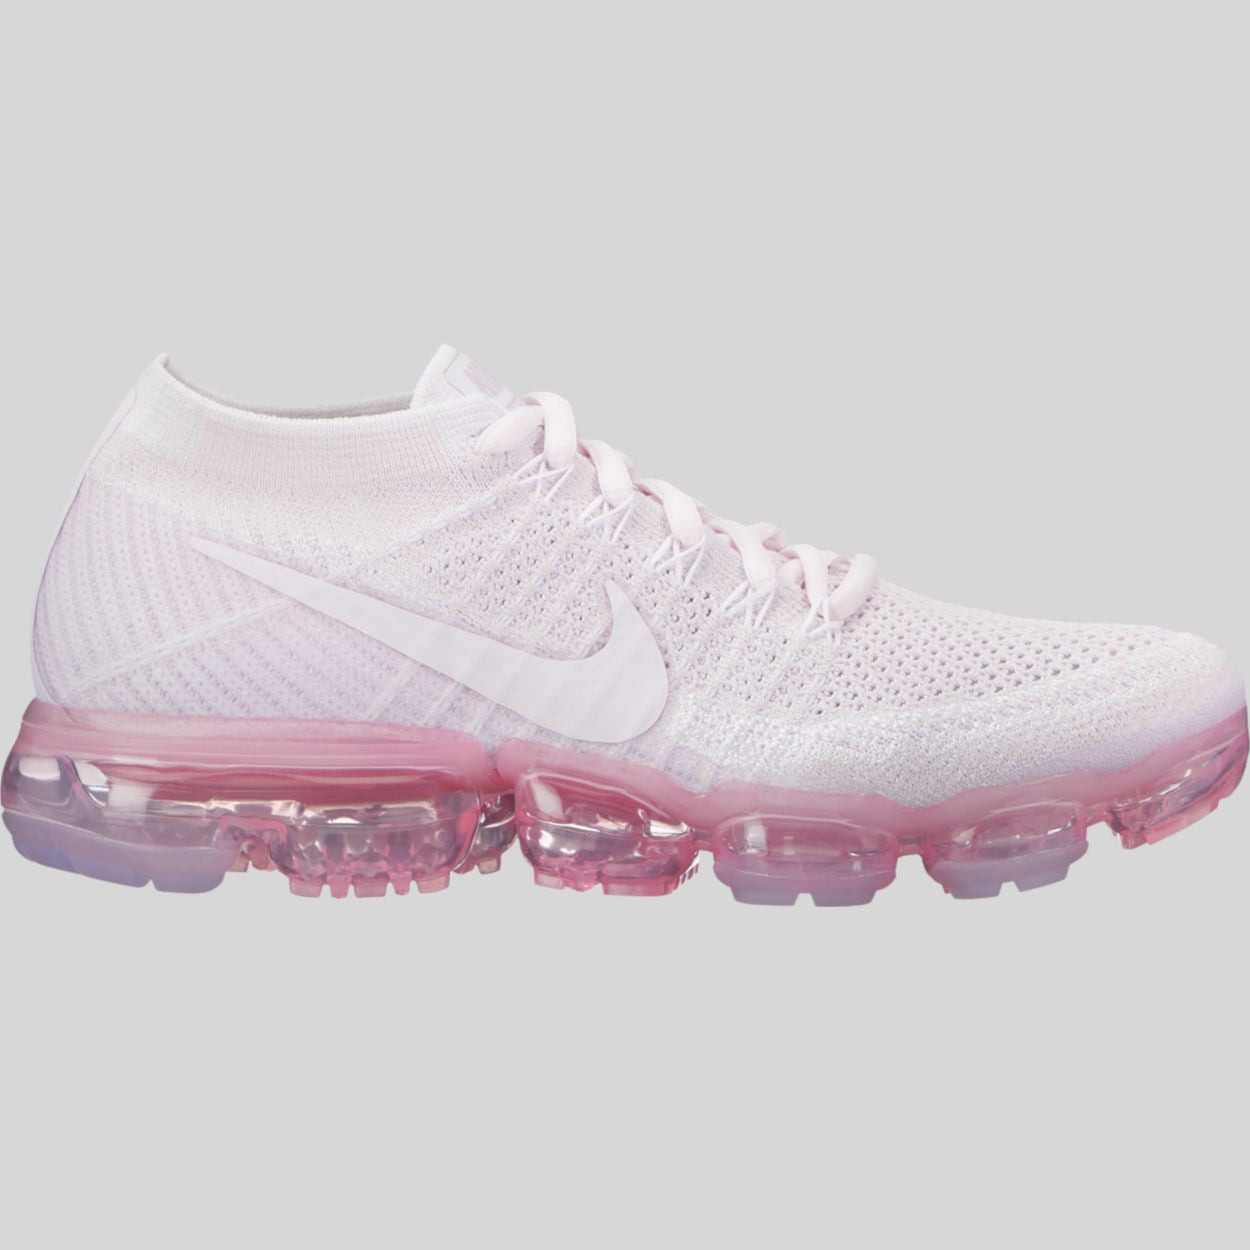 Nike Wmns Air Vapormax Flyknit Light Violet White (849557-501)  ec64738bf5